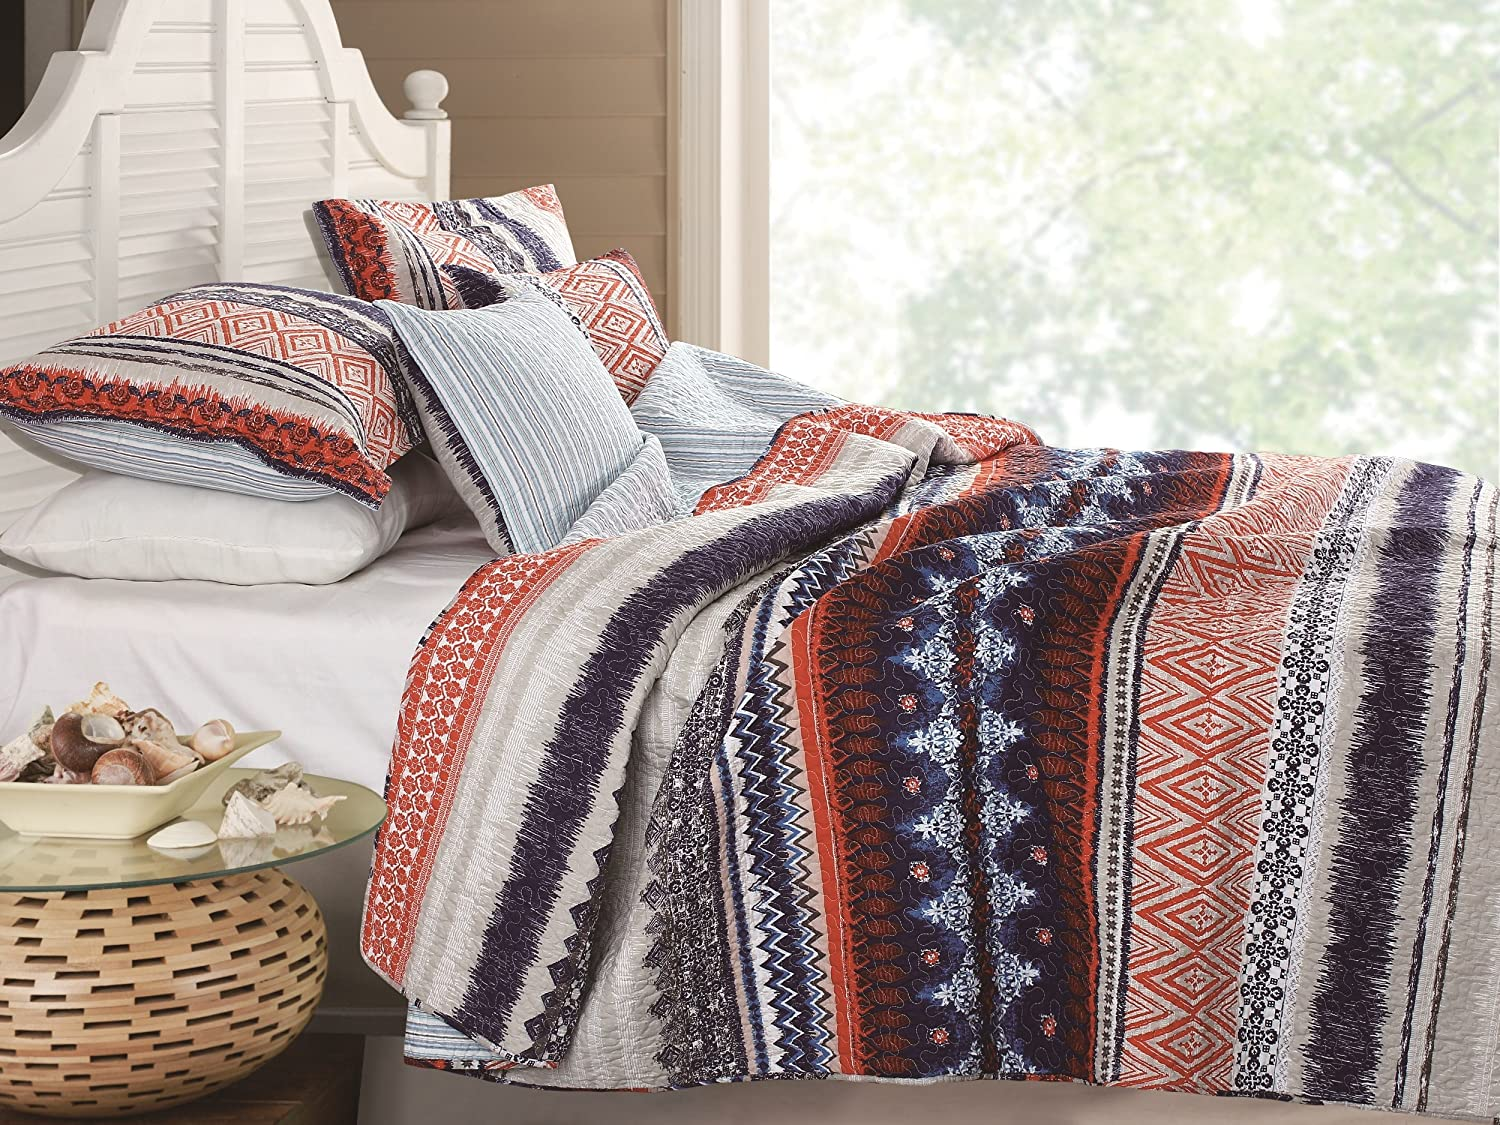 Greenland Home Bedding Sale Ease Bedding With Style